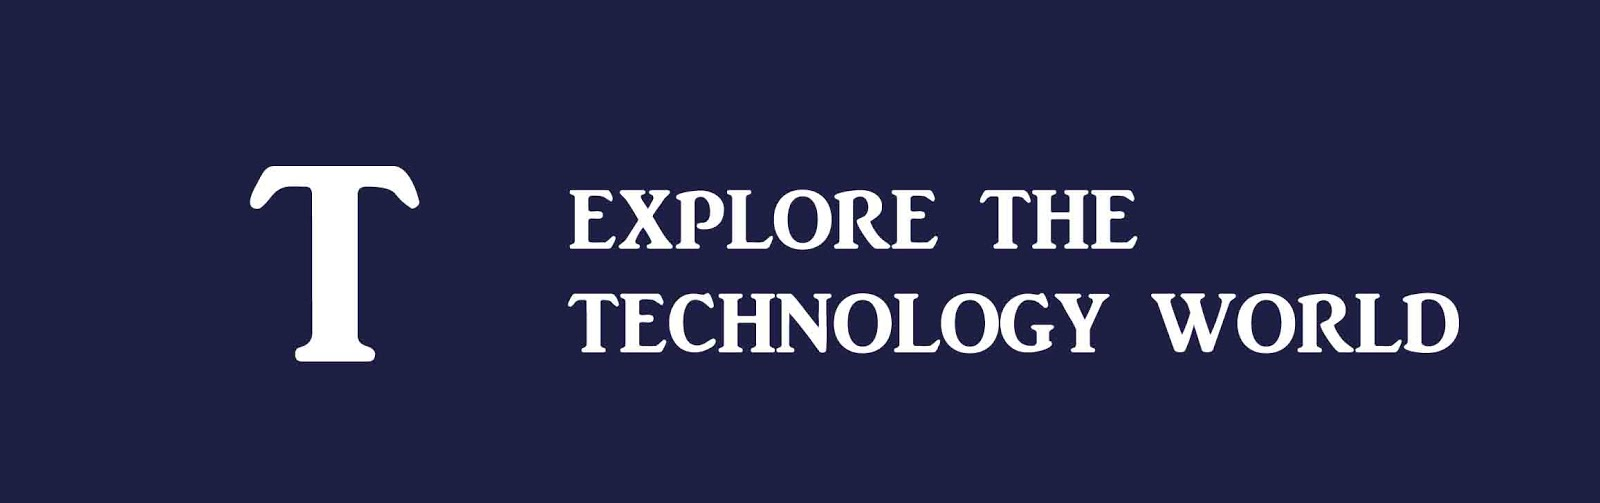 Explore The technology world